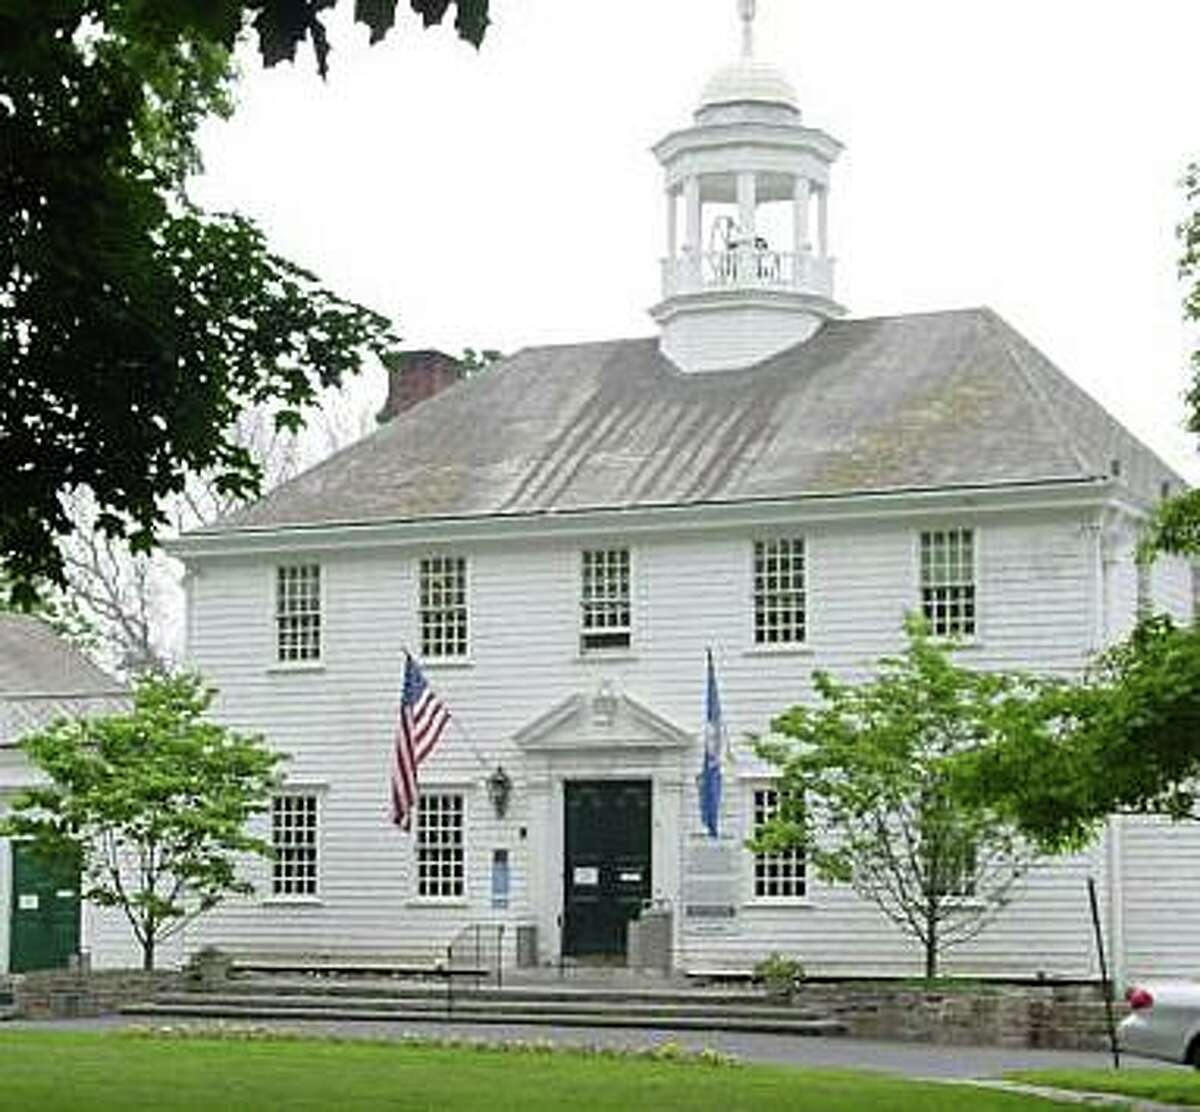 File photo of Fairfield's Old Town Hall